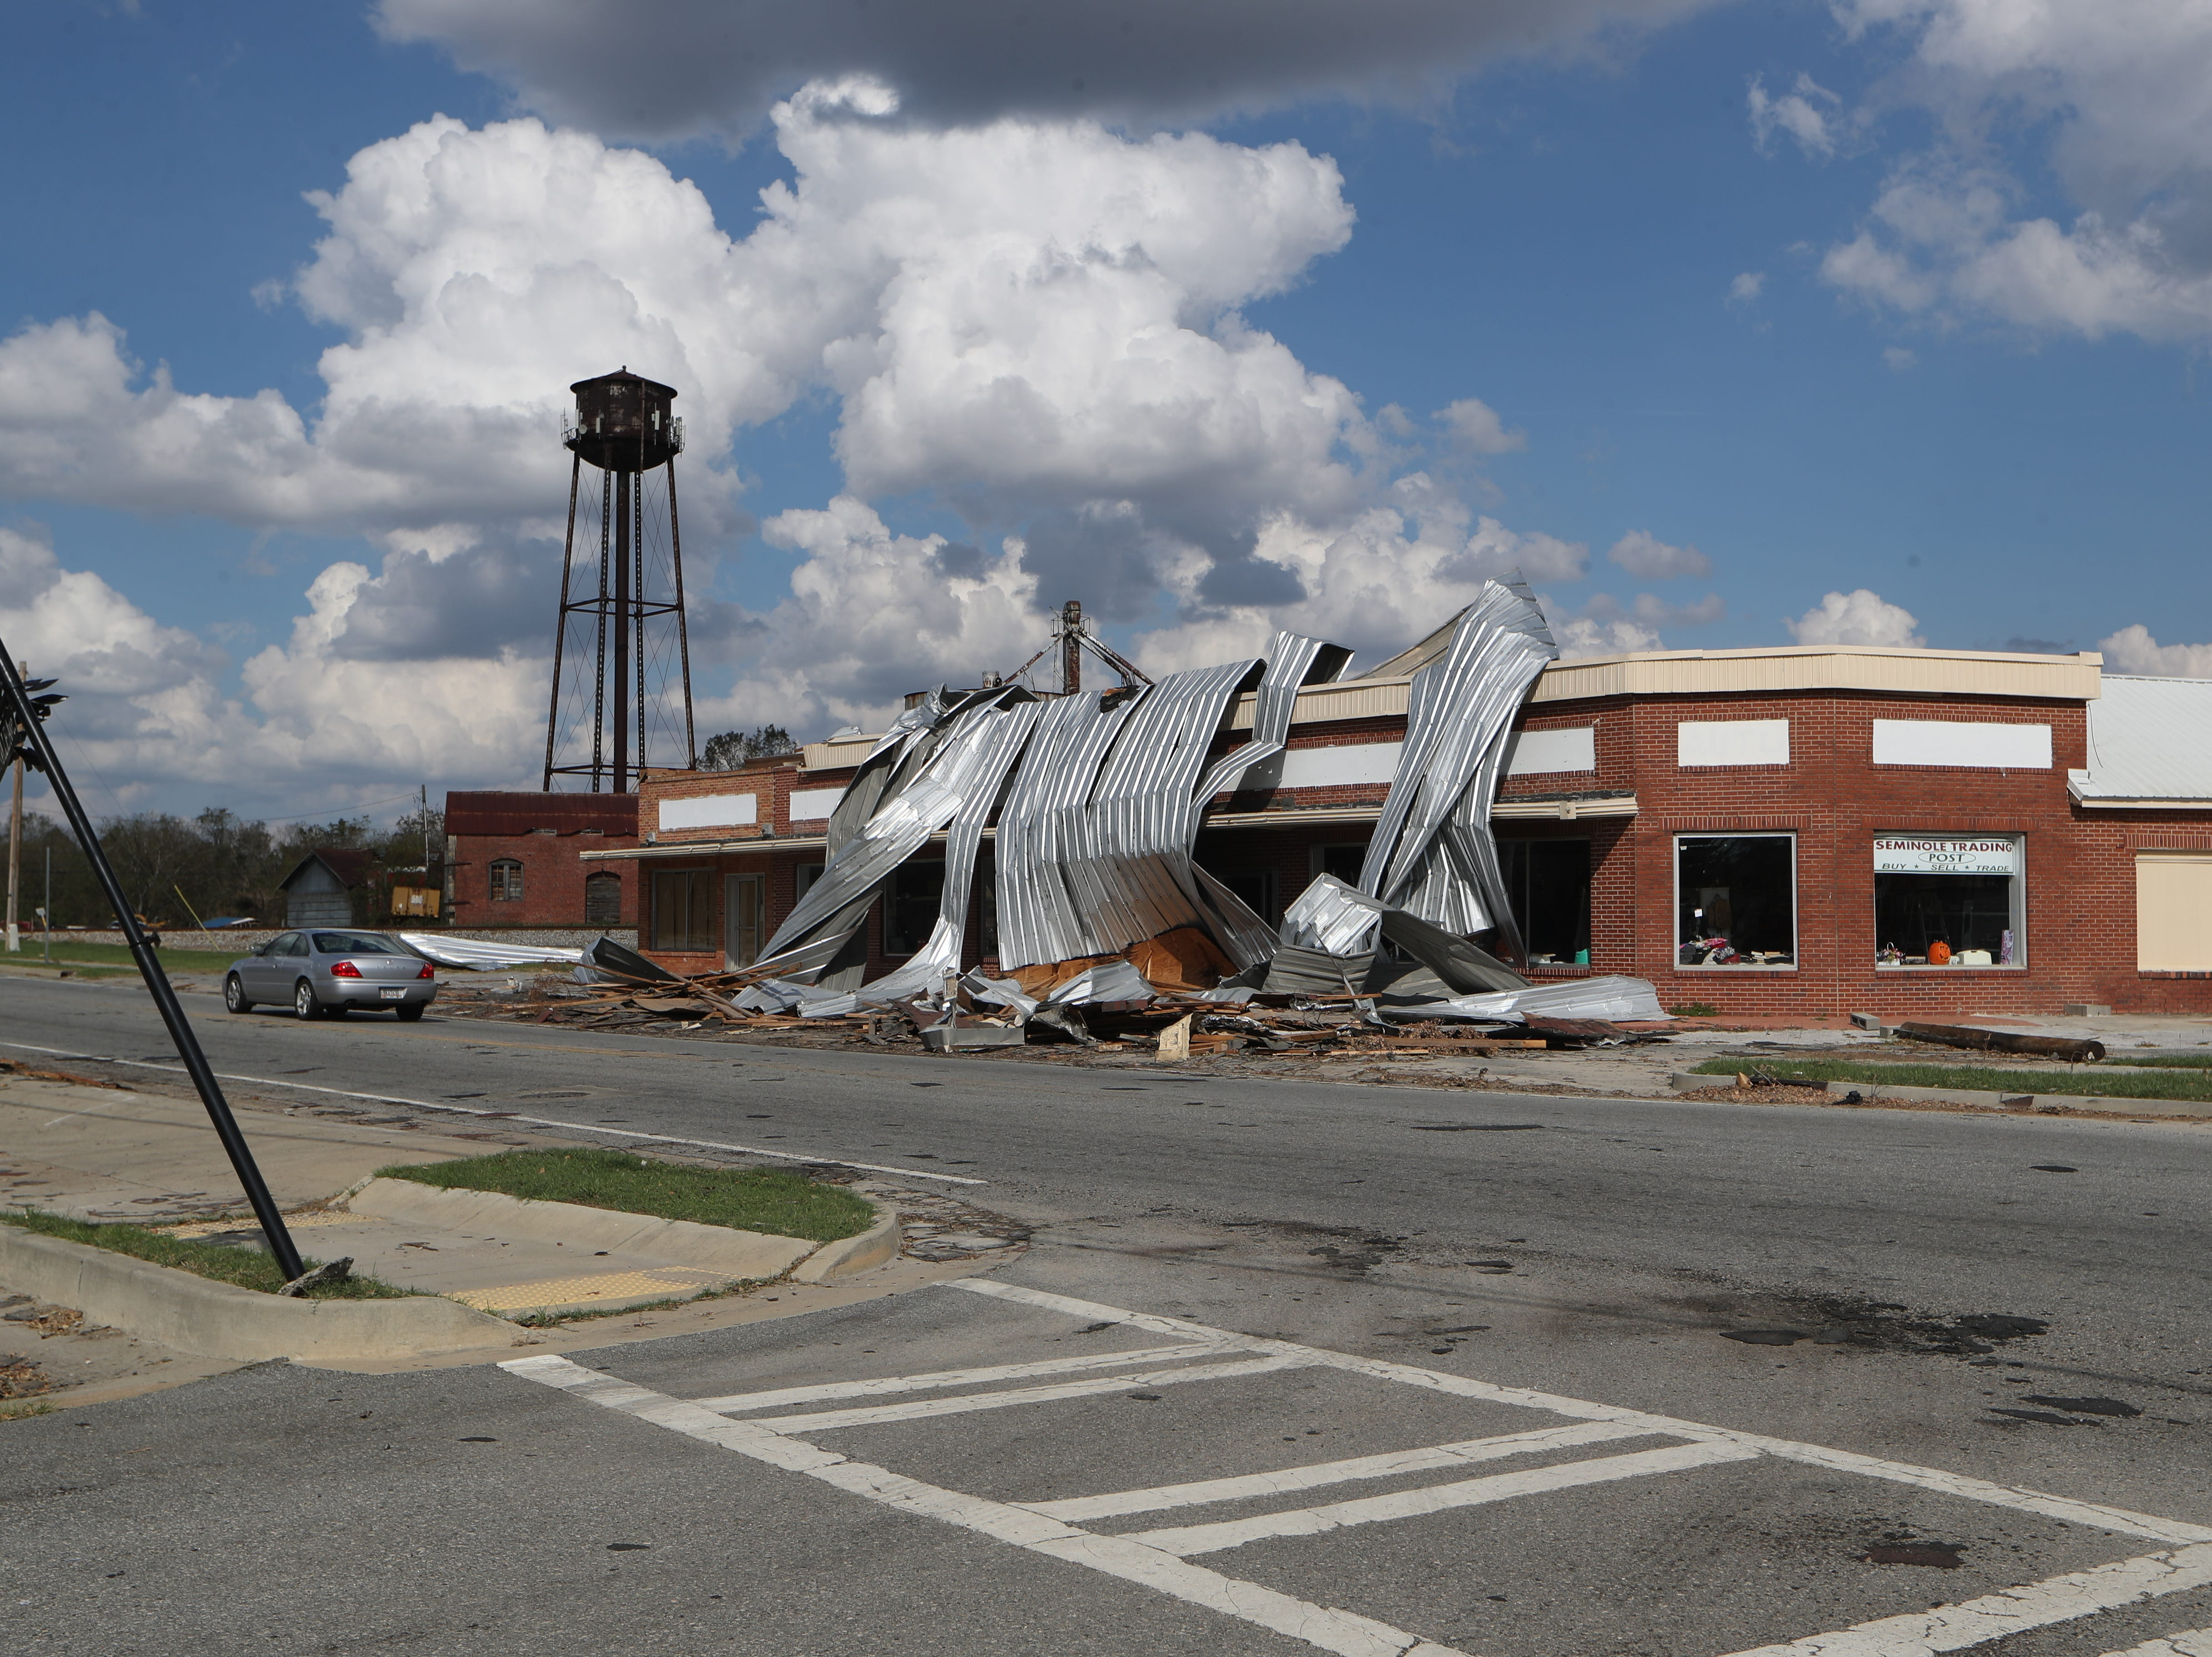 A roof is peeled off a building near downtown Donalsonville, Ga. after Hurricane Michael Wednesday, Oct. 17, 2018.